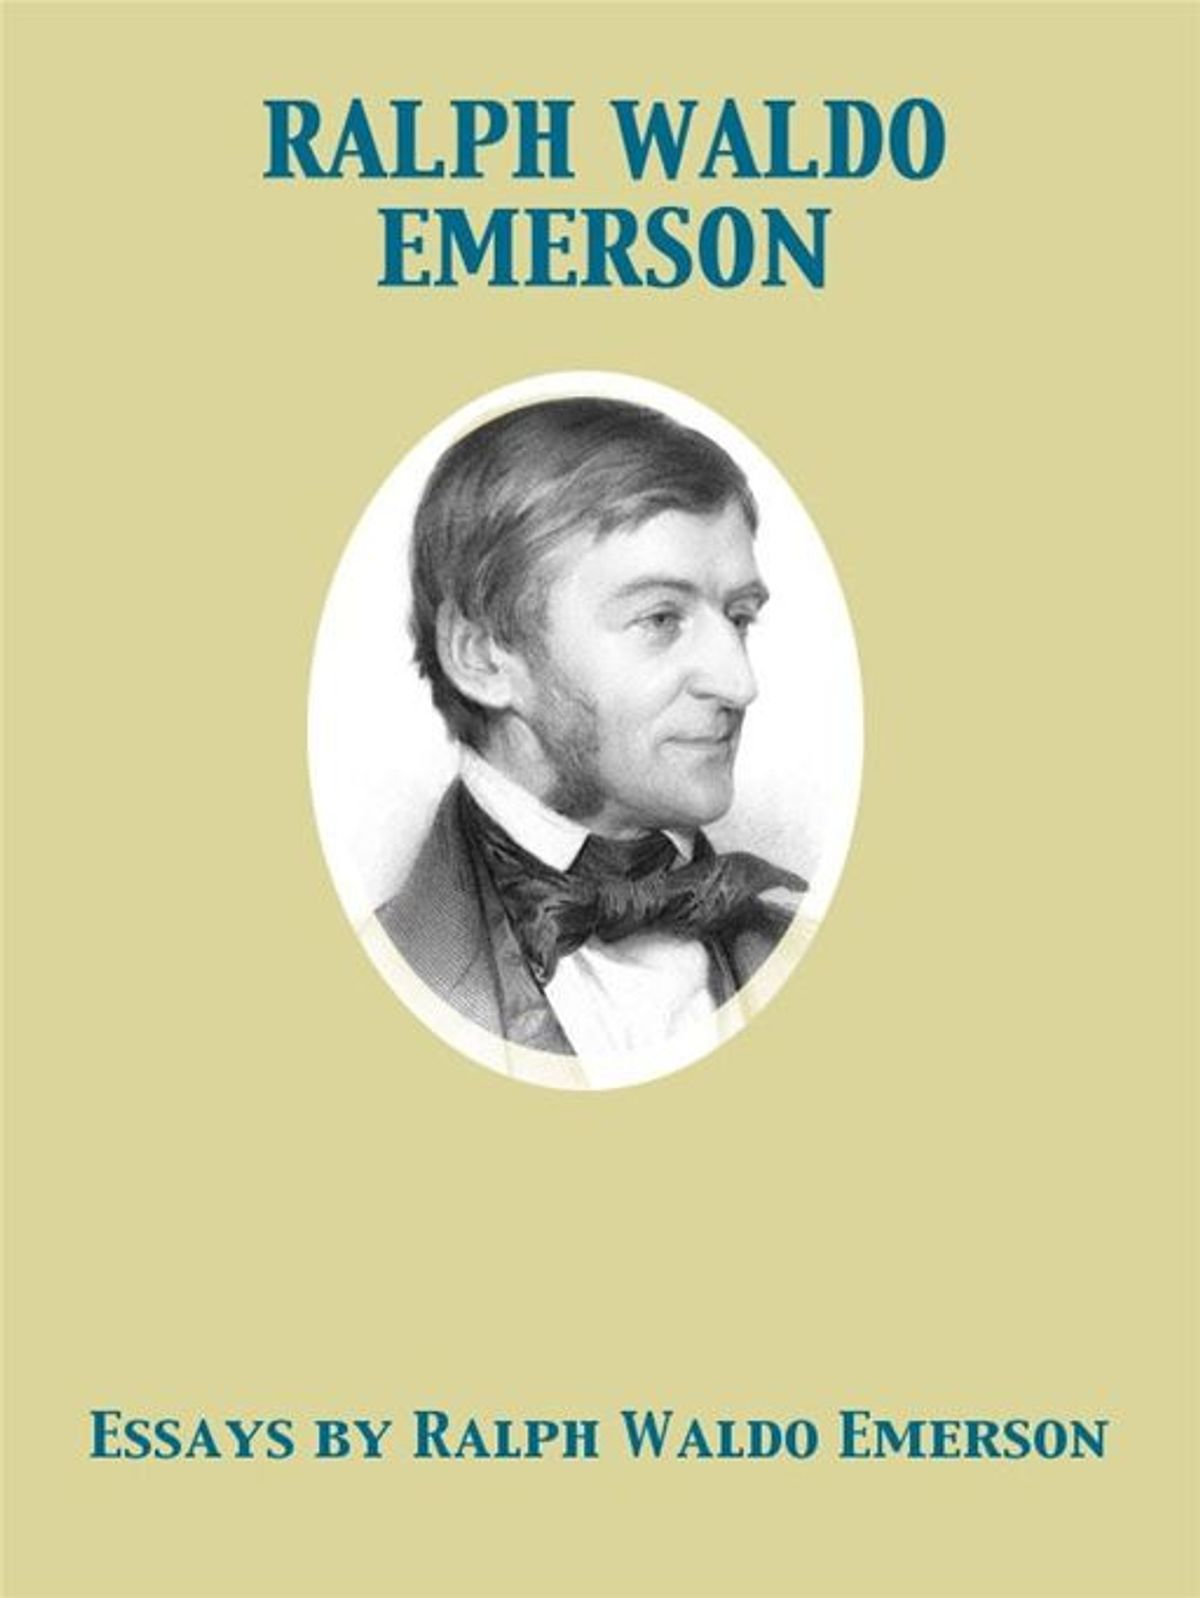 008 Emerson Essays By Ralph Waldo Essay Dreaded Self Reliance And Other Second Series Nature Full